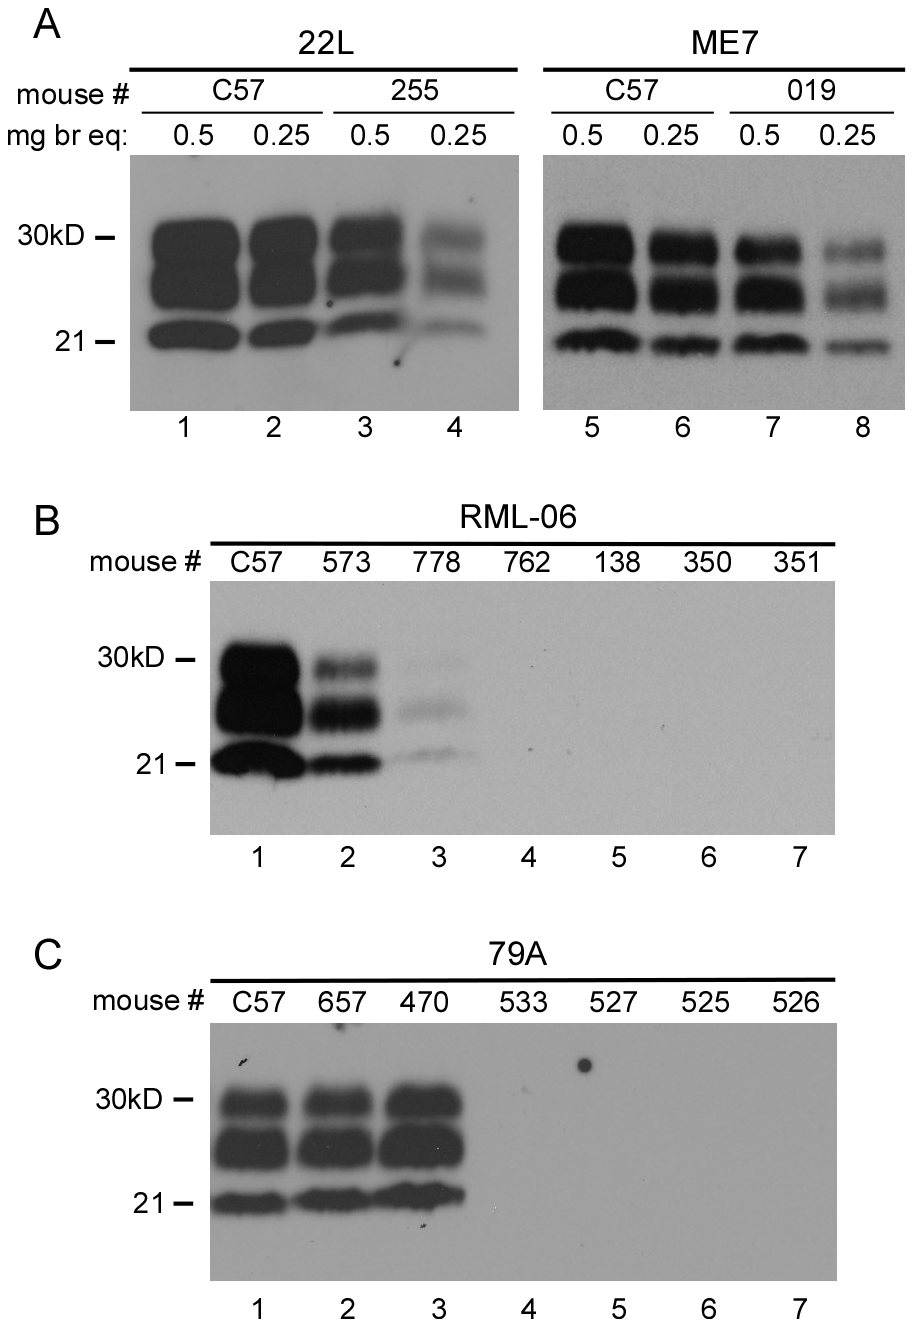 Immunoblot analysis of PrPres in scrapie-infected mice.